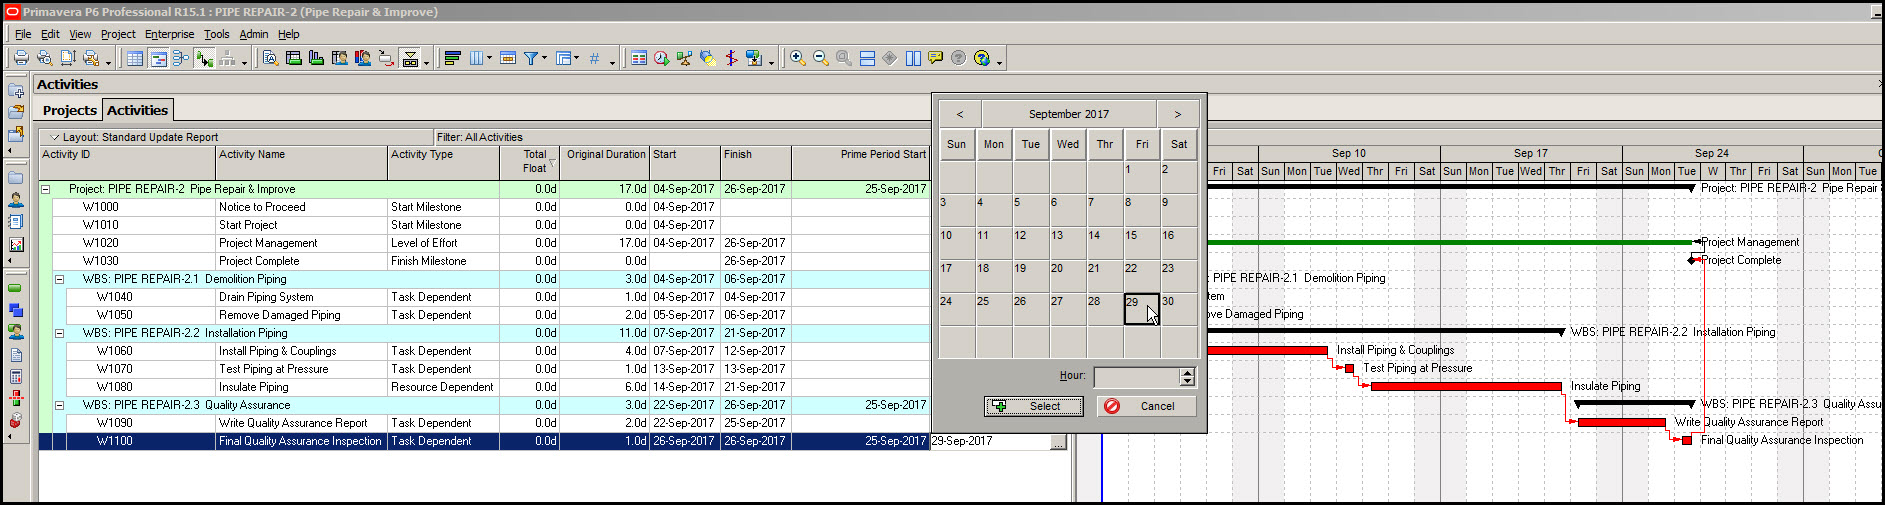 Prime Period Gantt Chart Bar Fig 6